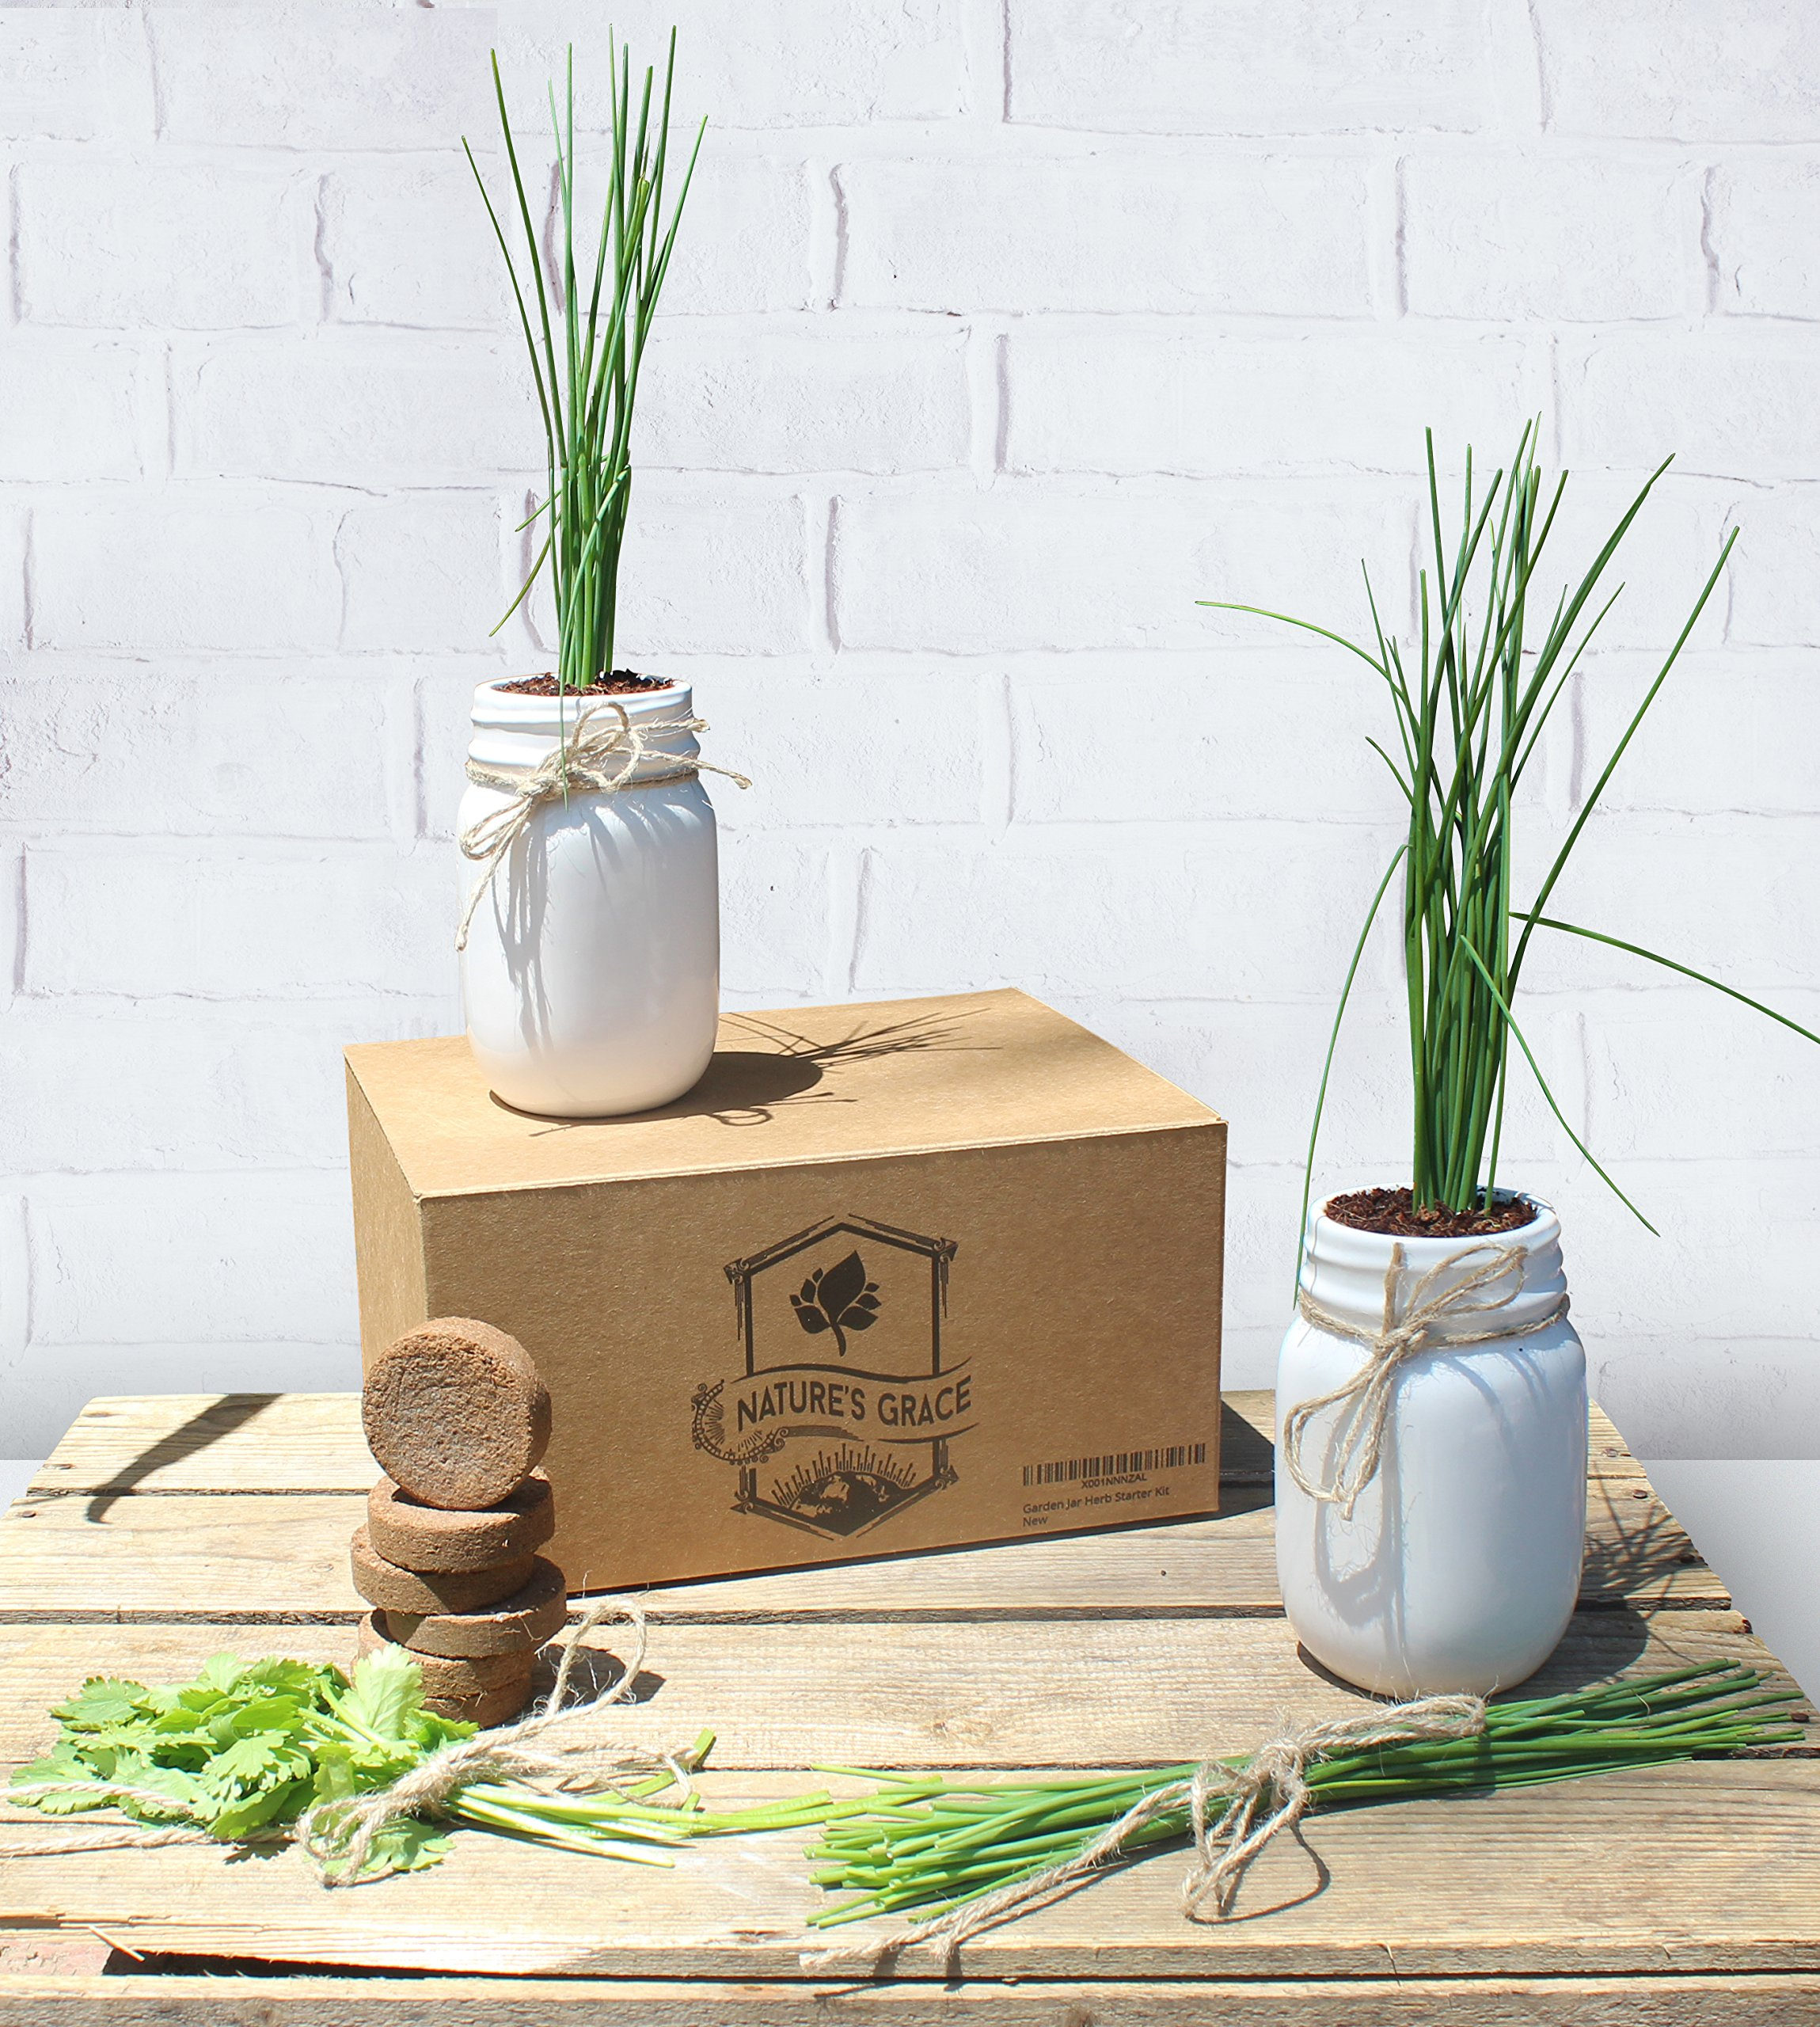 Ceramic Mason Jar Indoor Windowsill Herb Garden Planter Starter Kit | Certified Organic Non GMO Coconut Peat Coir | Culinary Italian Basil Cilantro Thyme Parsley Chive Seeds | Unique Kitchen Gift